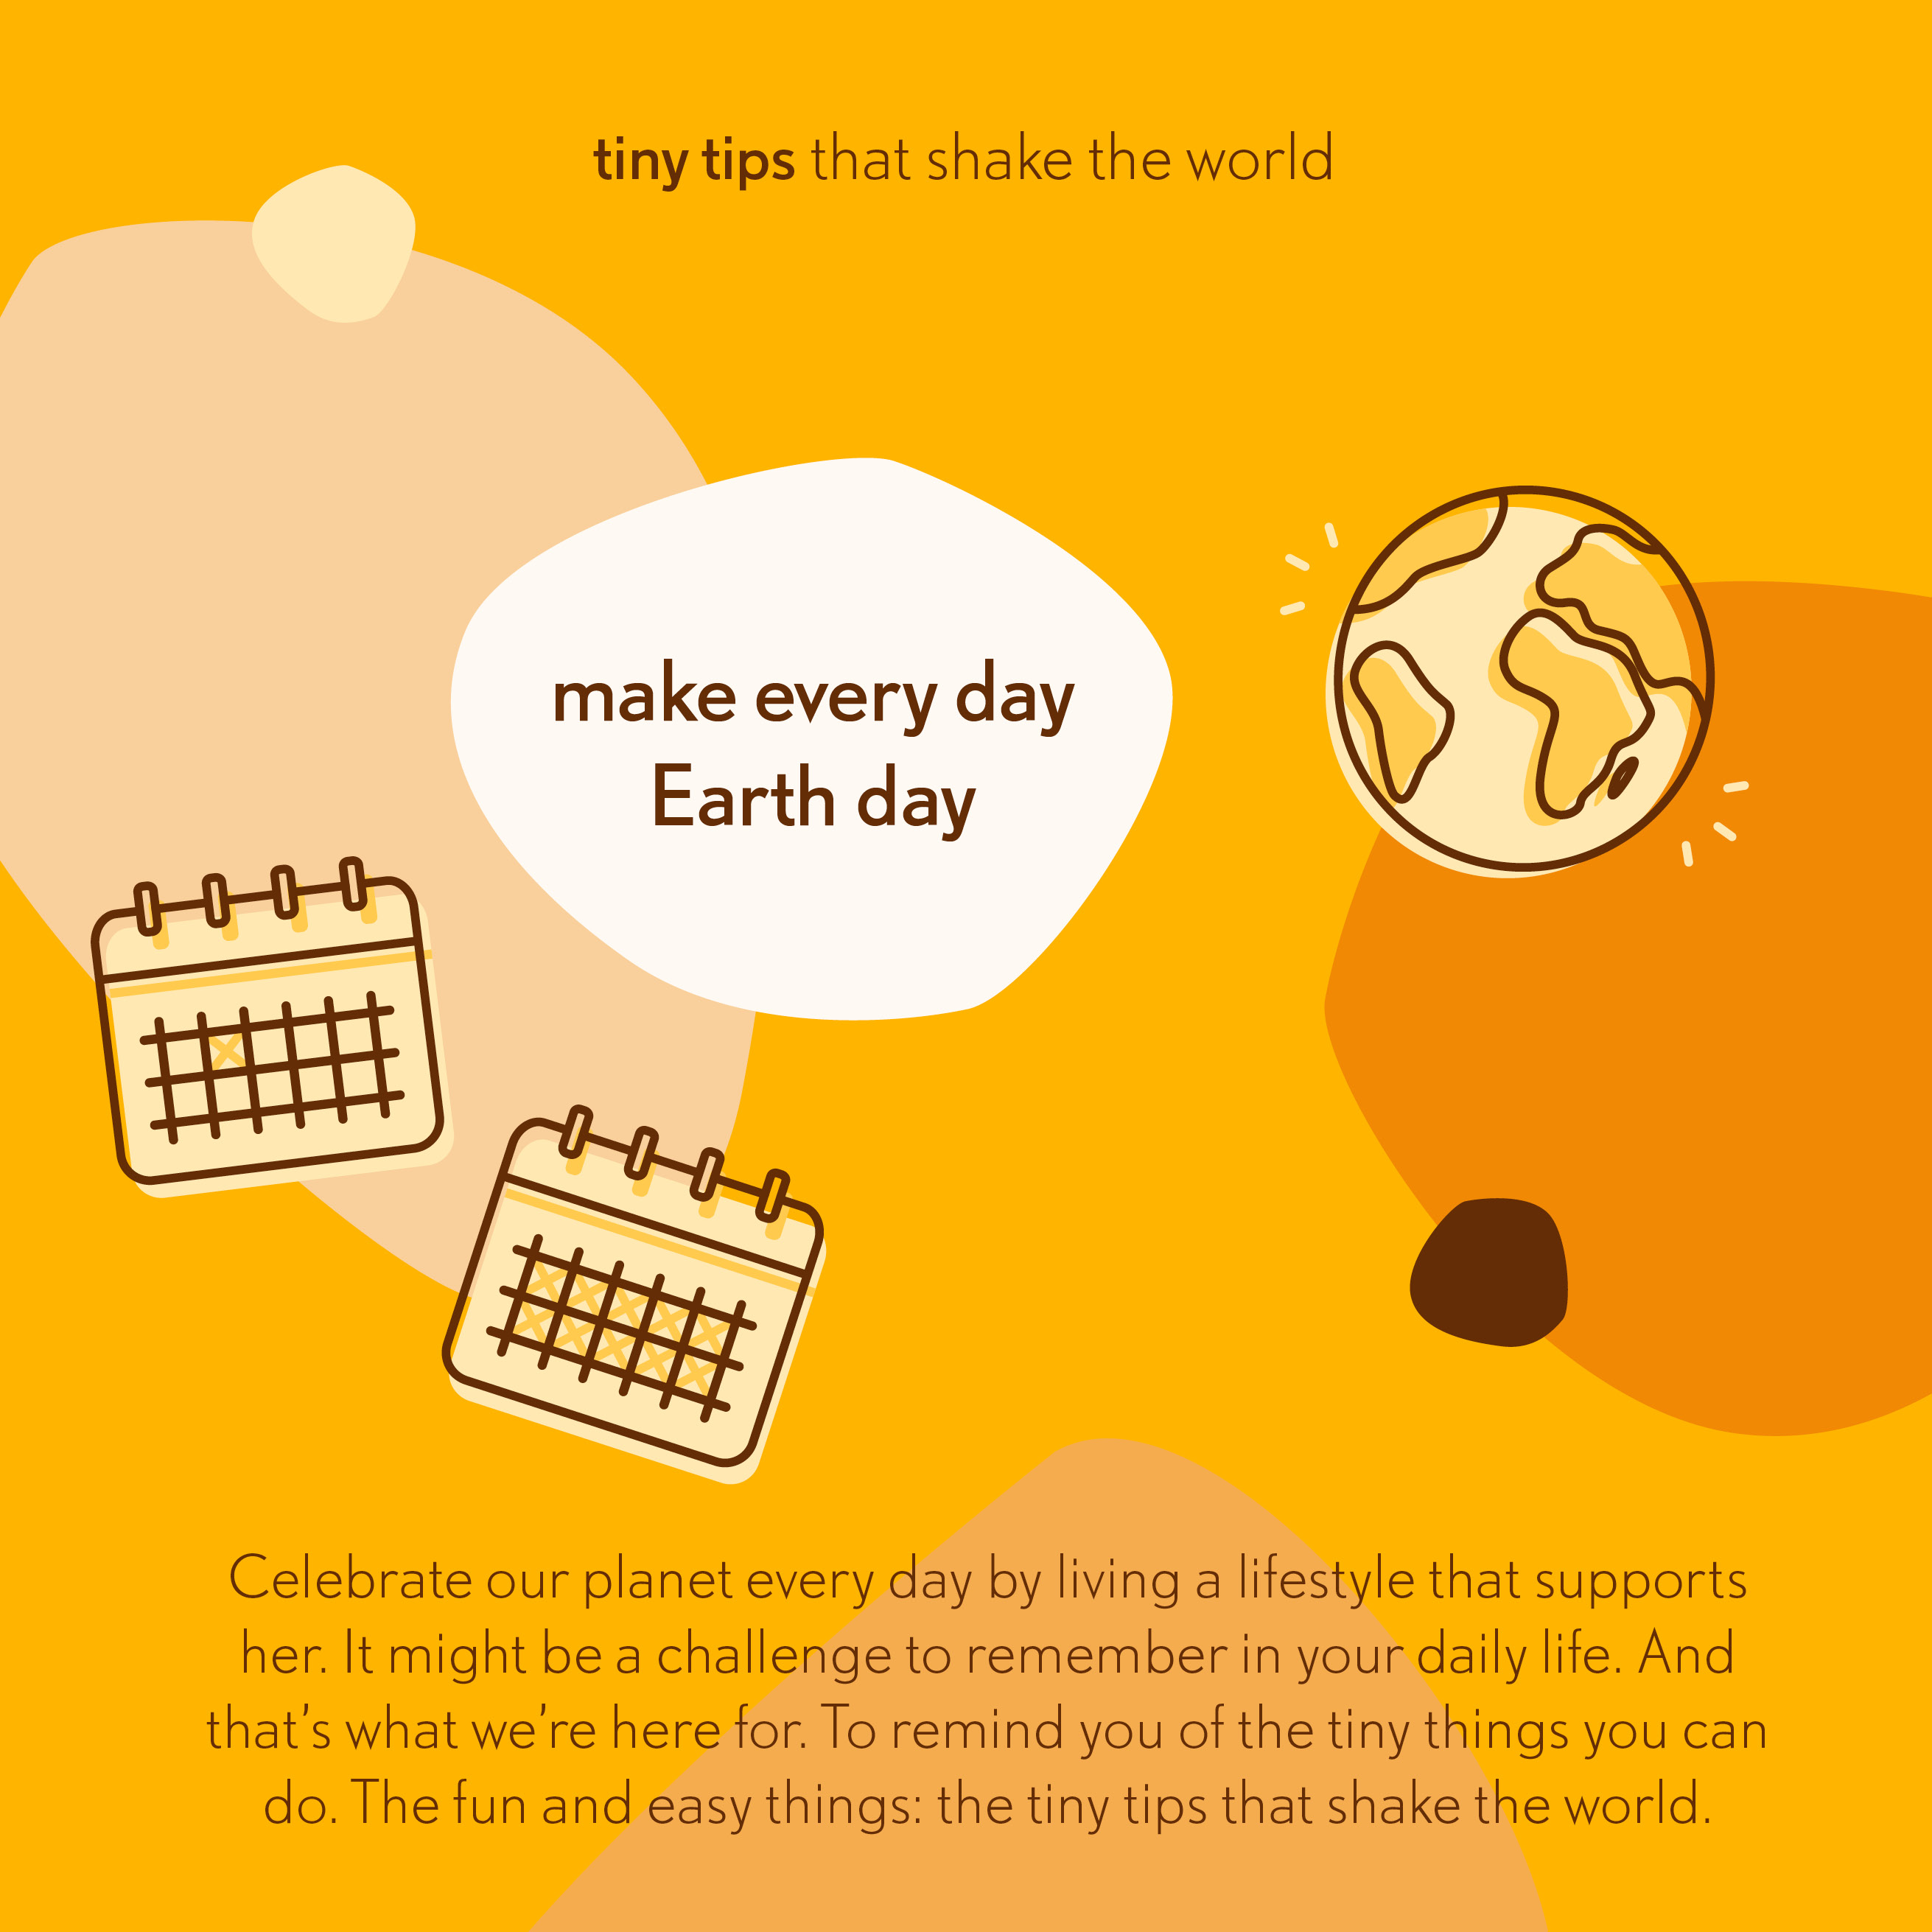 Make every day Earth Day - Tiny tips that shake the world